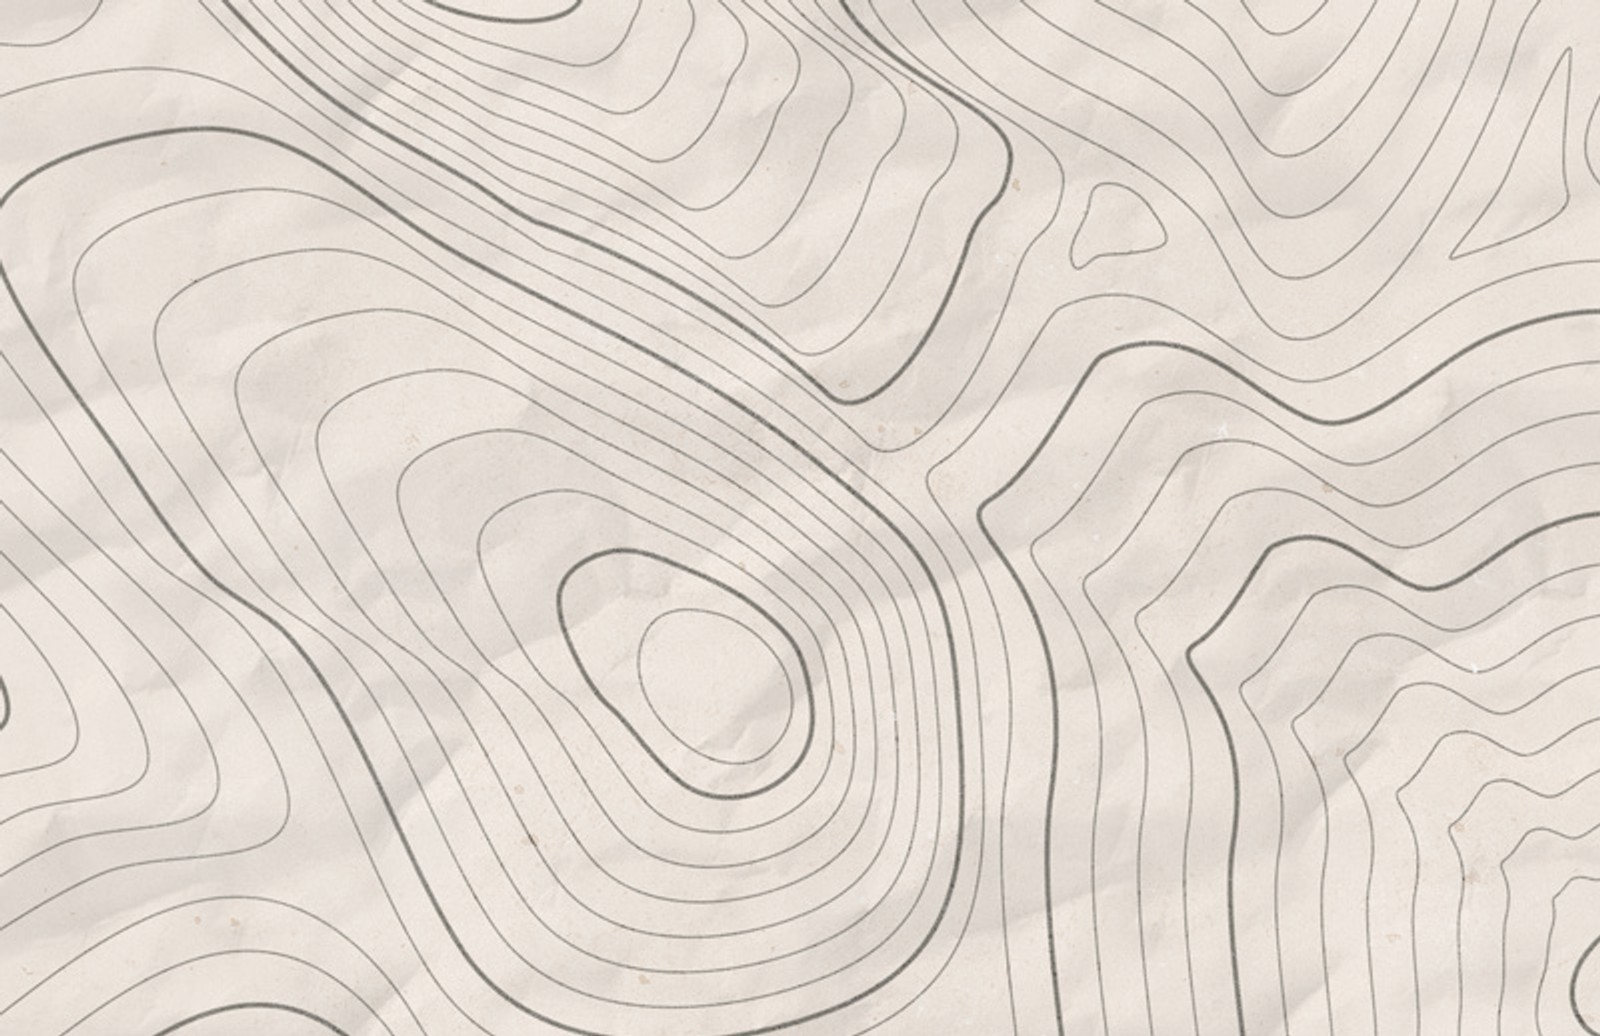 Vector Drawing Lines Download : Vector topographic map contours — medialoot